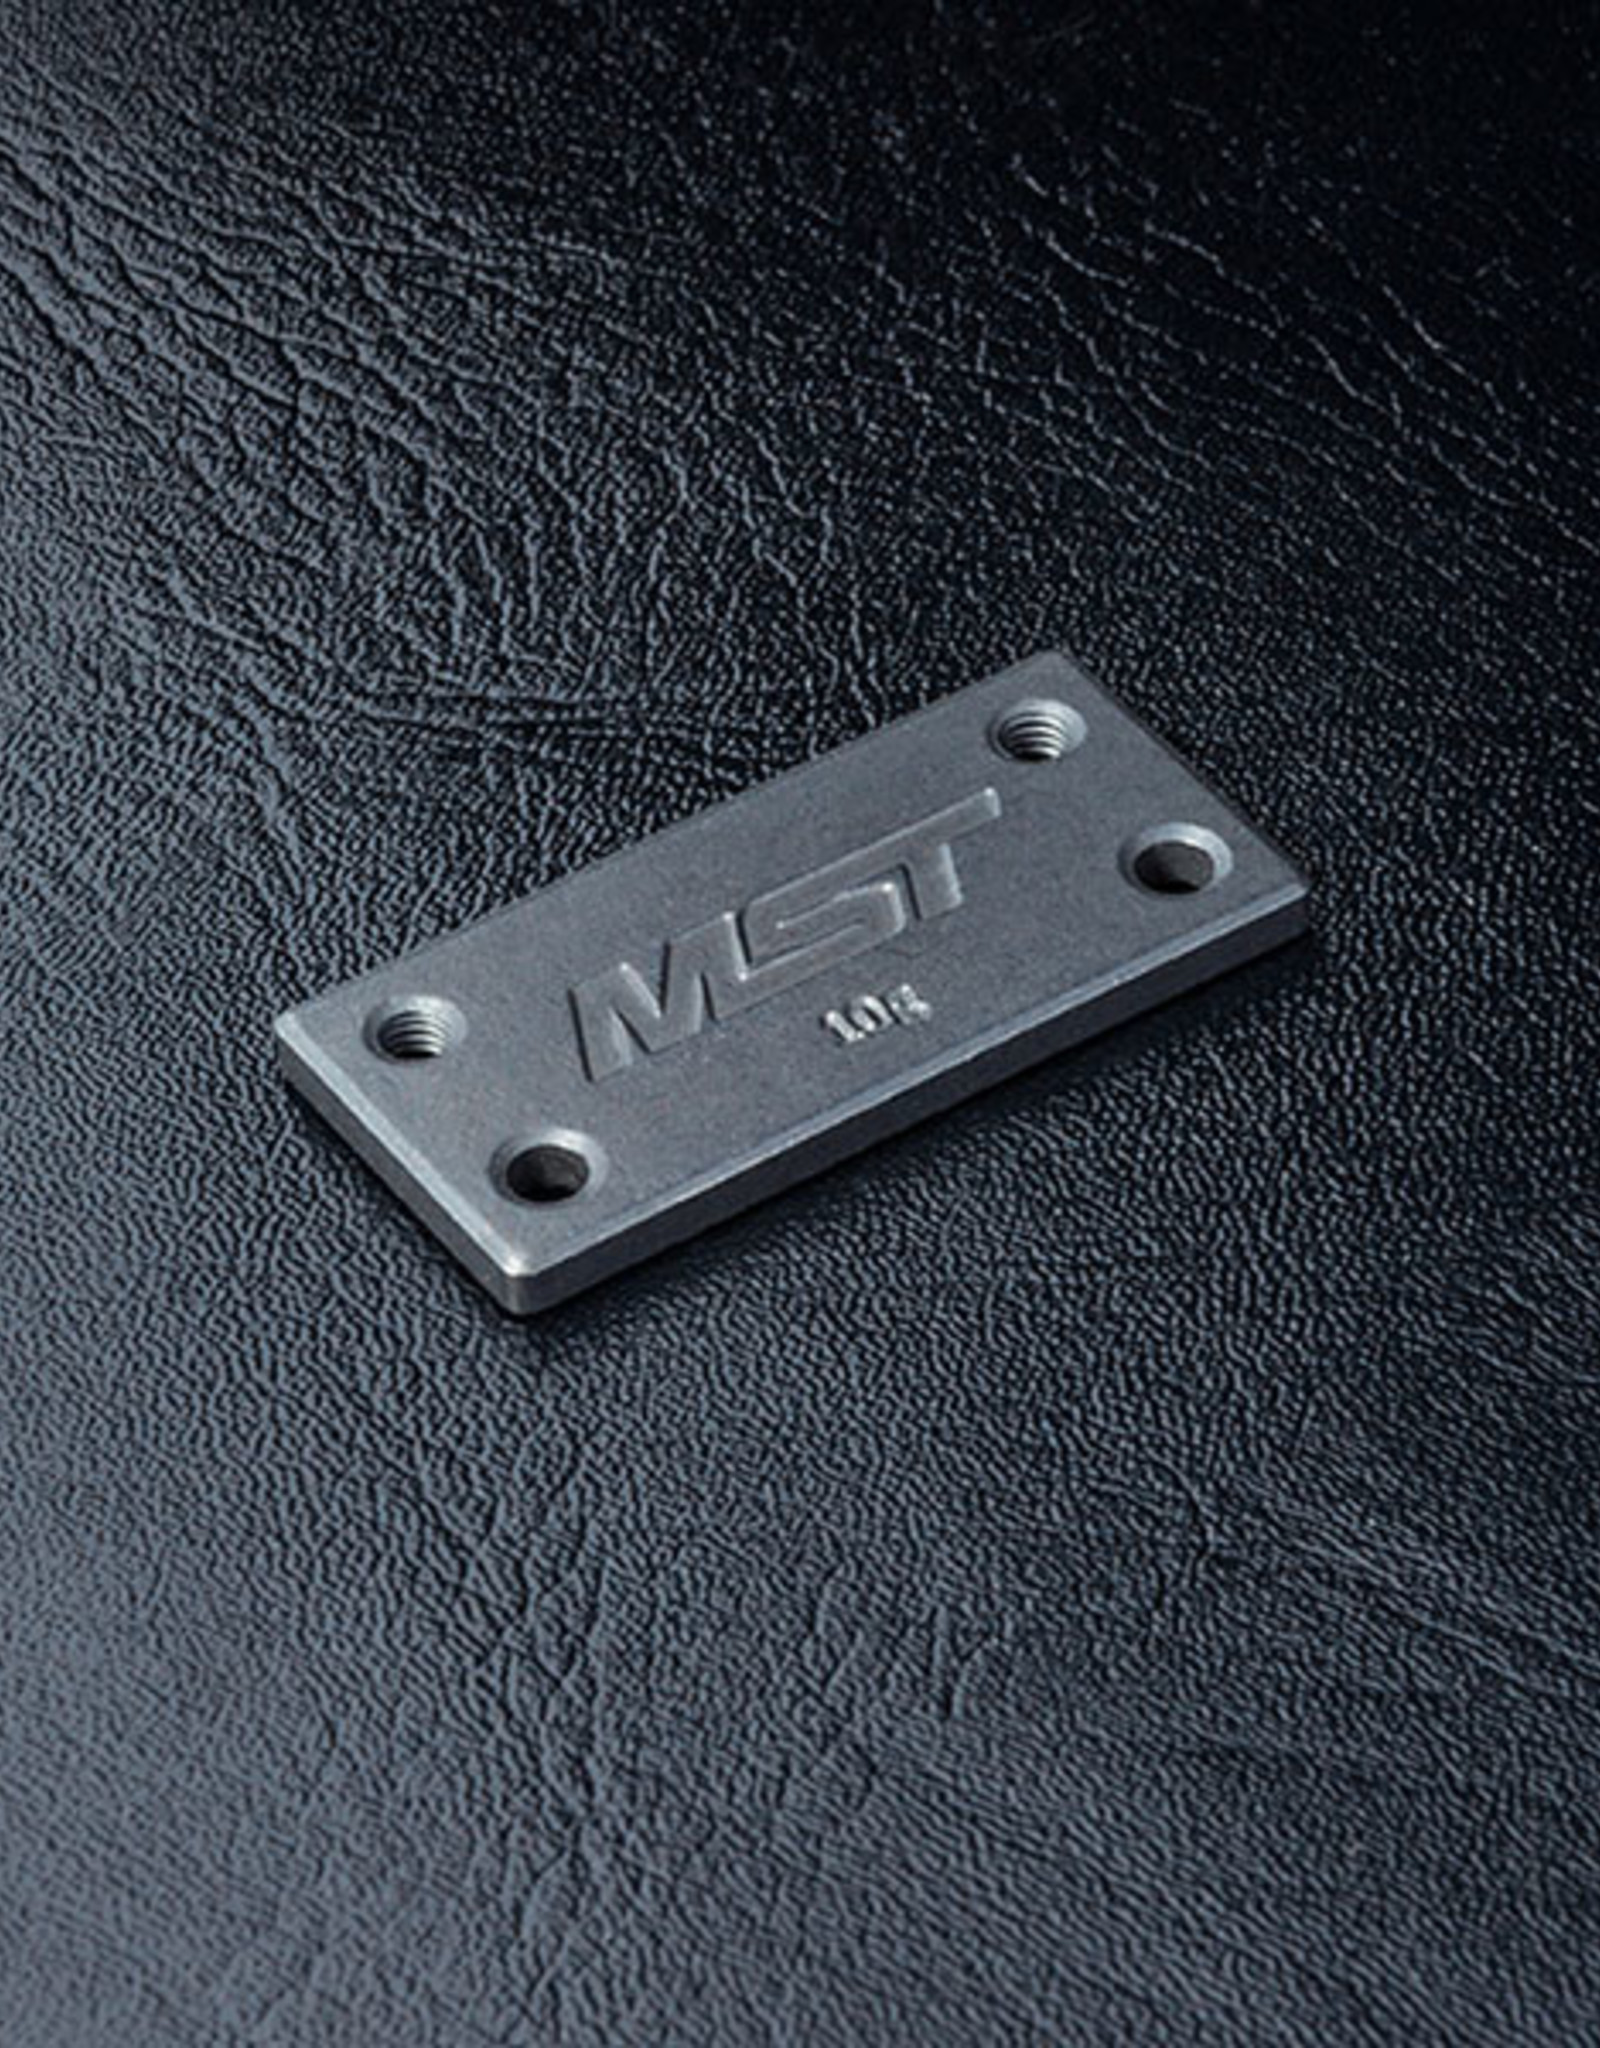 MST MXPD820085 MST Balancing weights 10g by MST